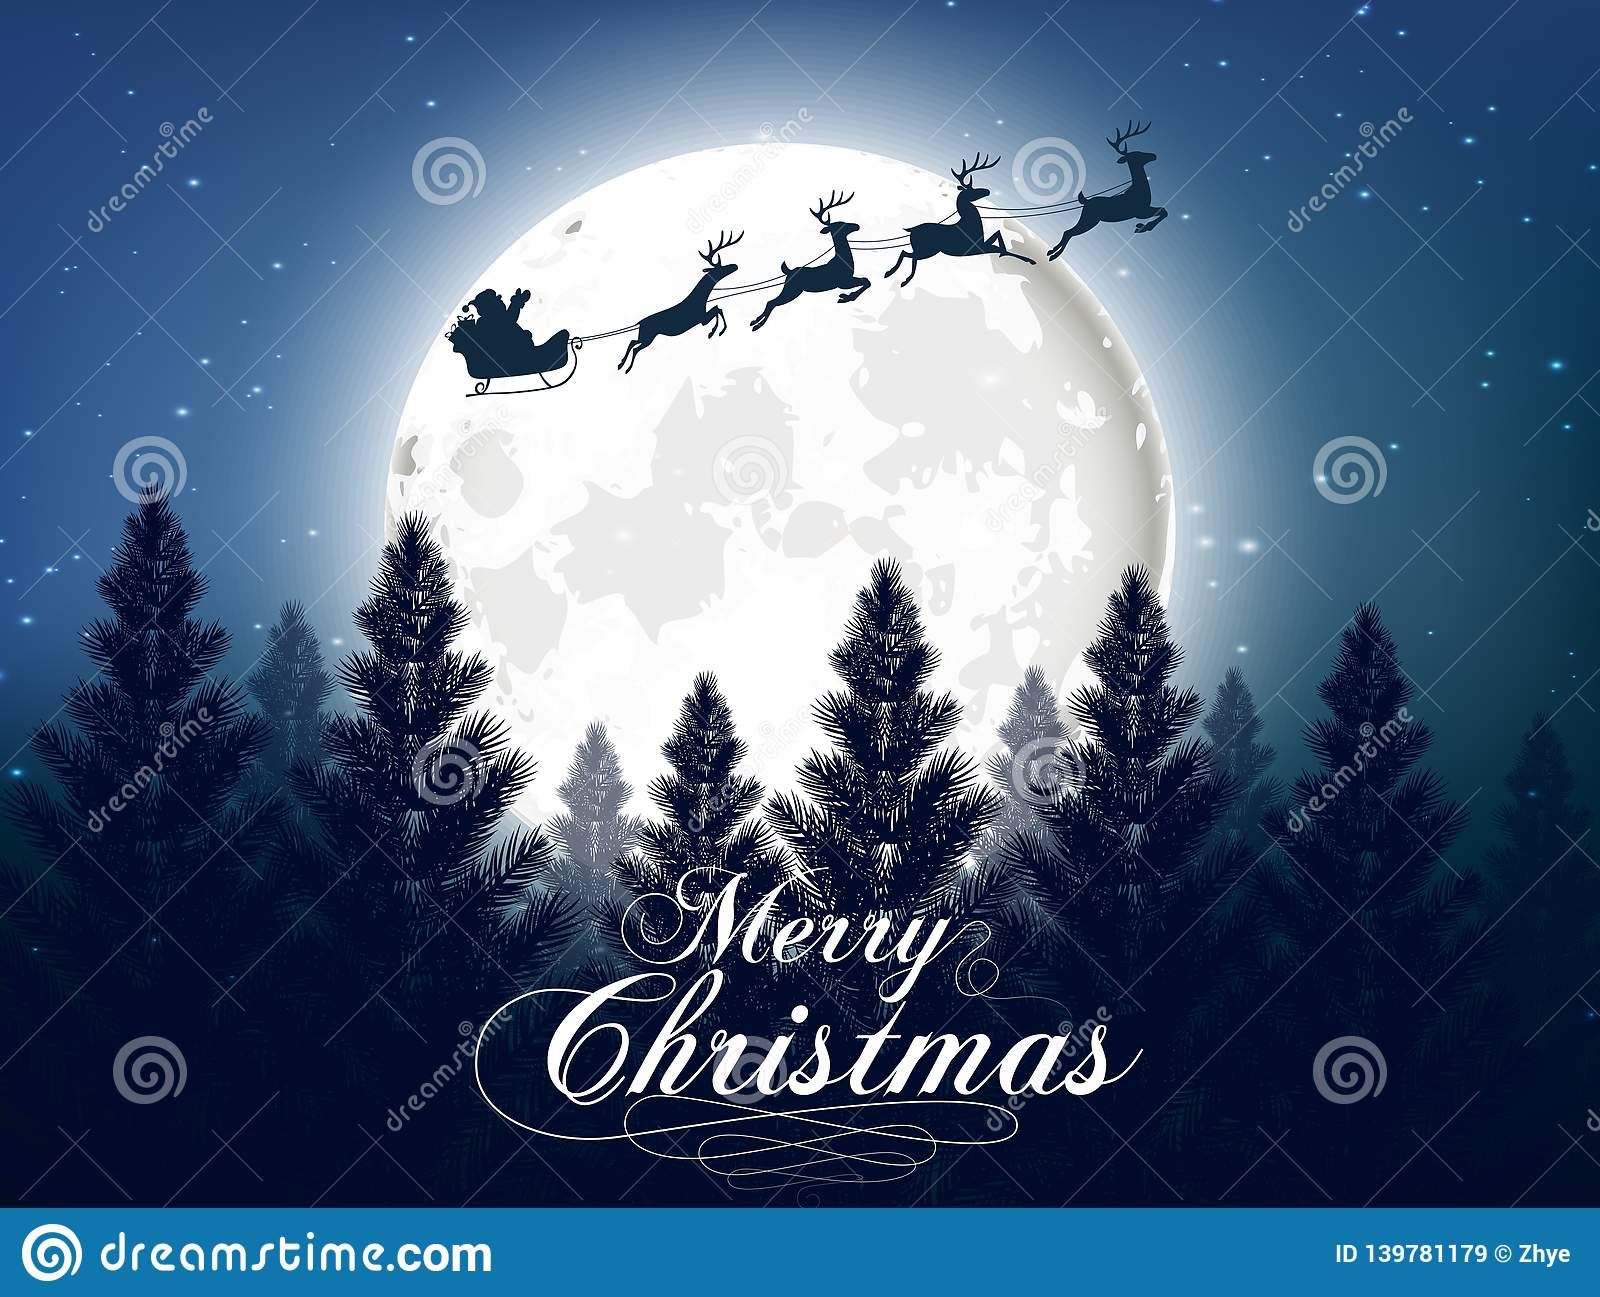 Merry christmas greeting card with big shinny moon in the night forest background